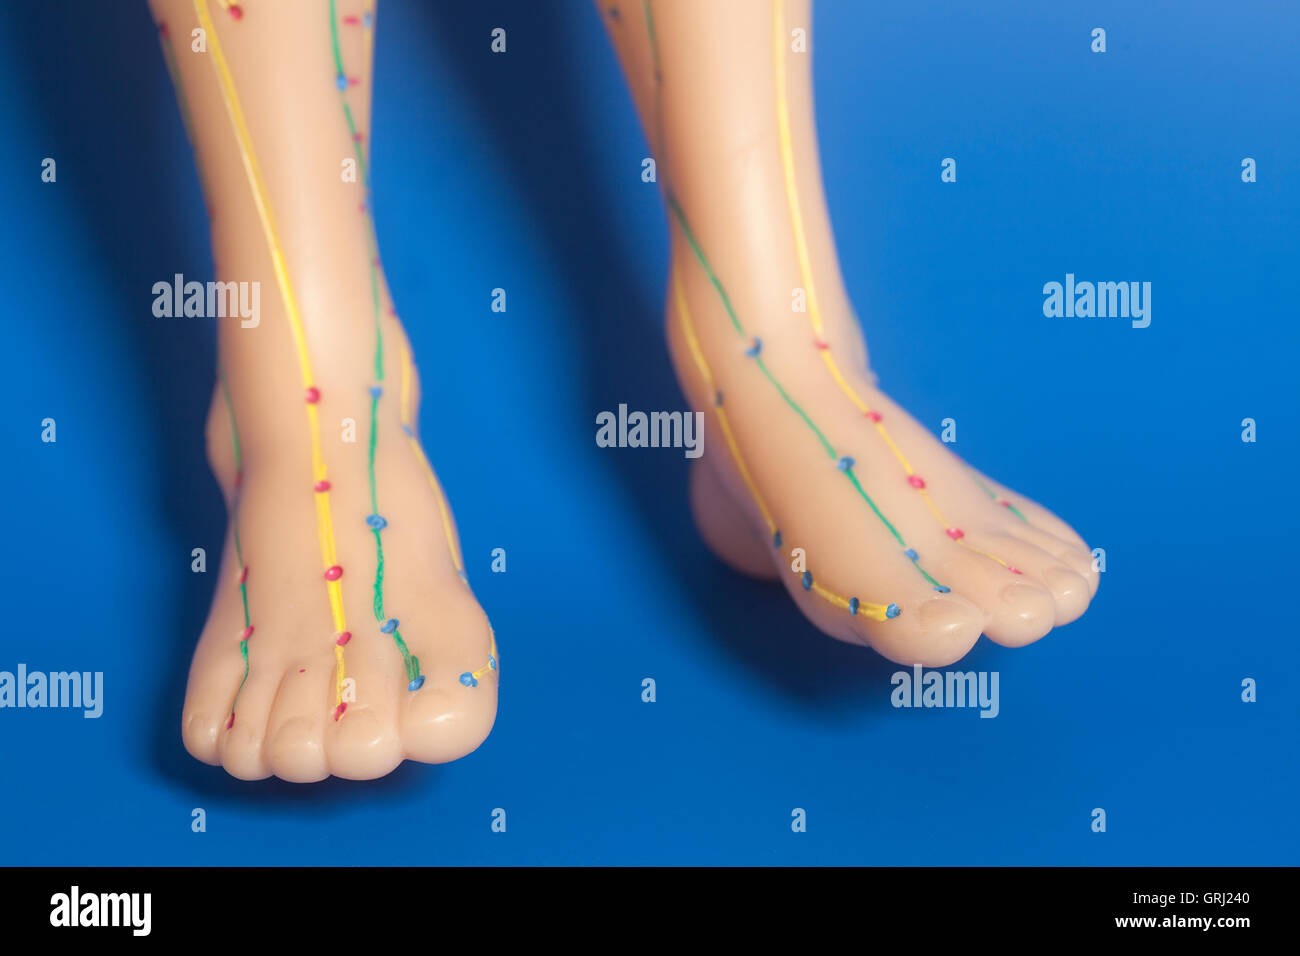 Medical acupuncture model of human feet  on blue background - Stock Image